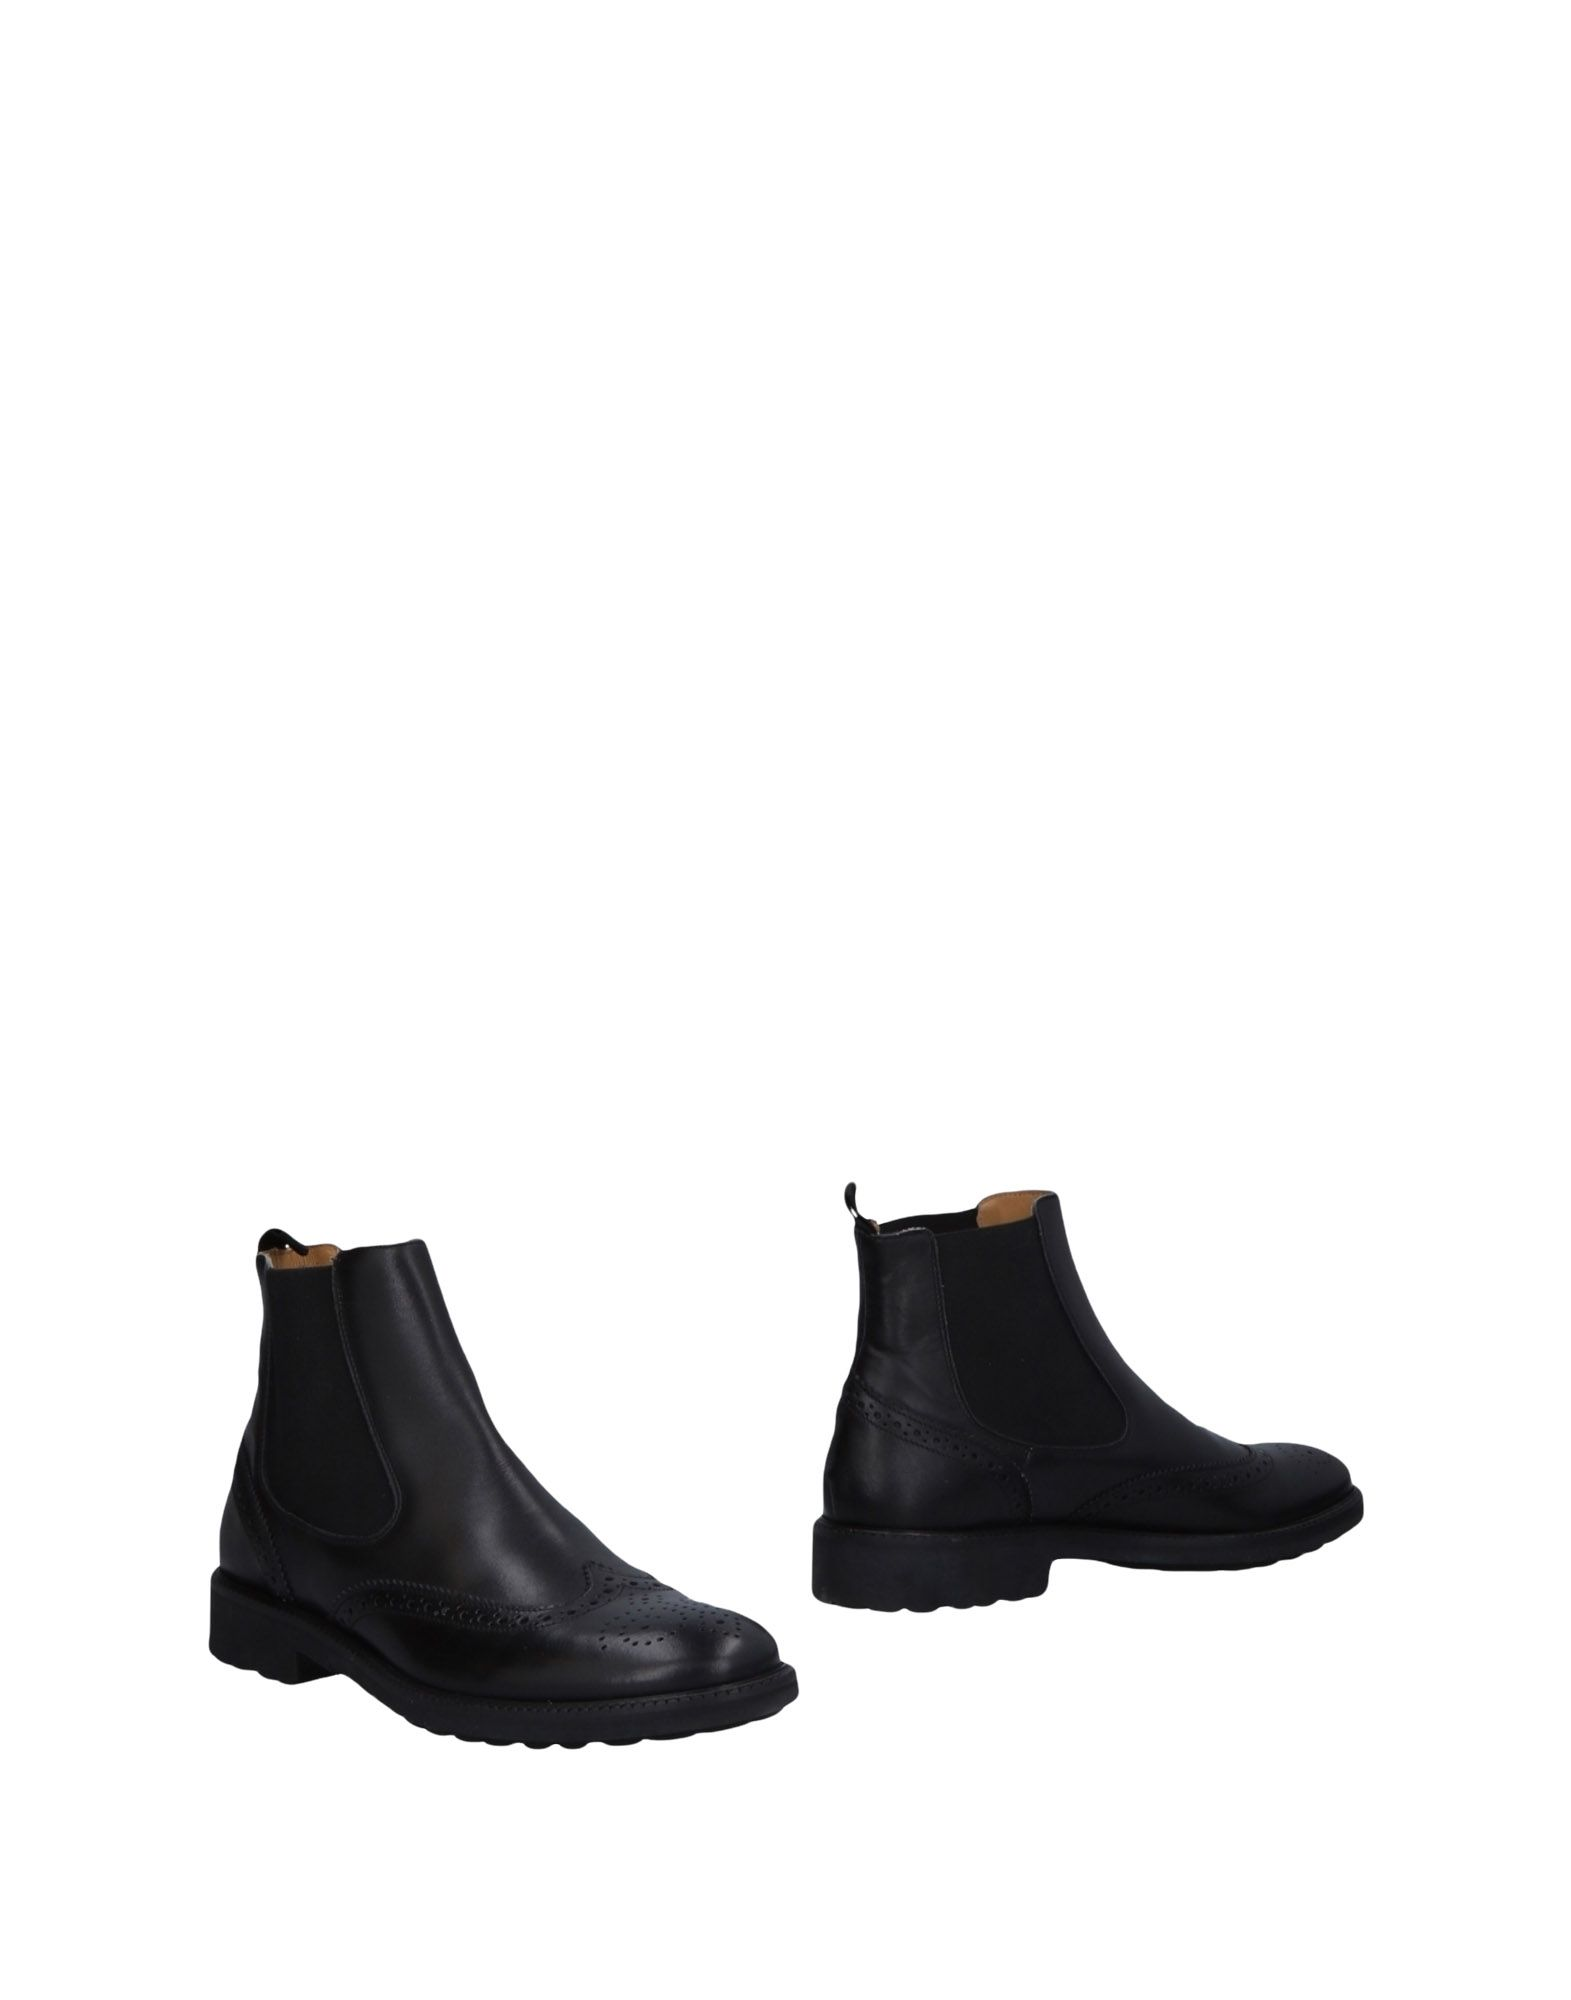 Gallucci Ankle Boot Boots - Women Gallucci Ankle Boots Boot online on  Australia - 11475422VN 5733e8